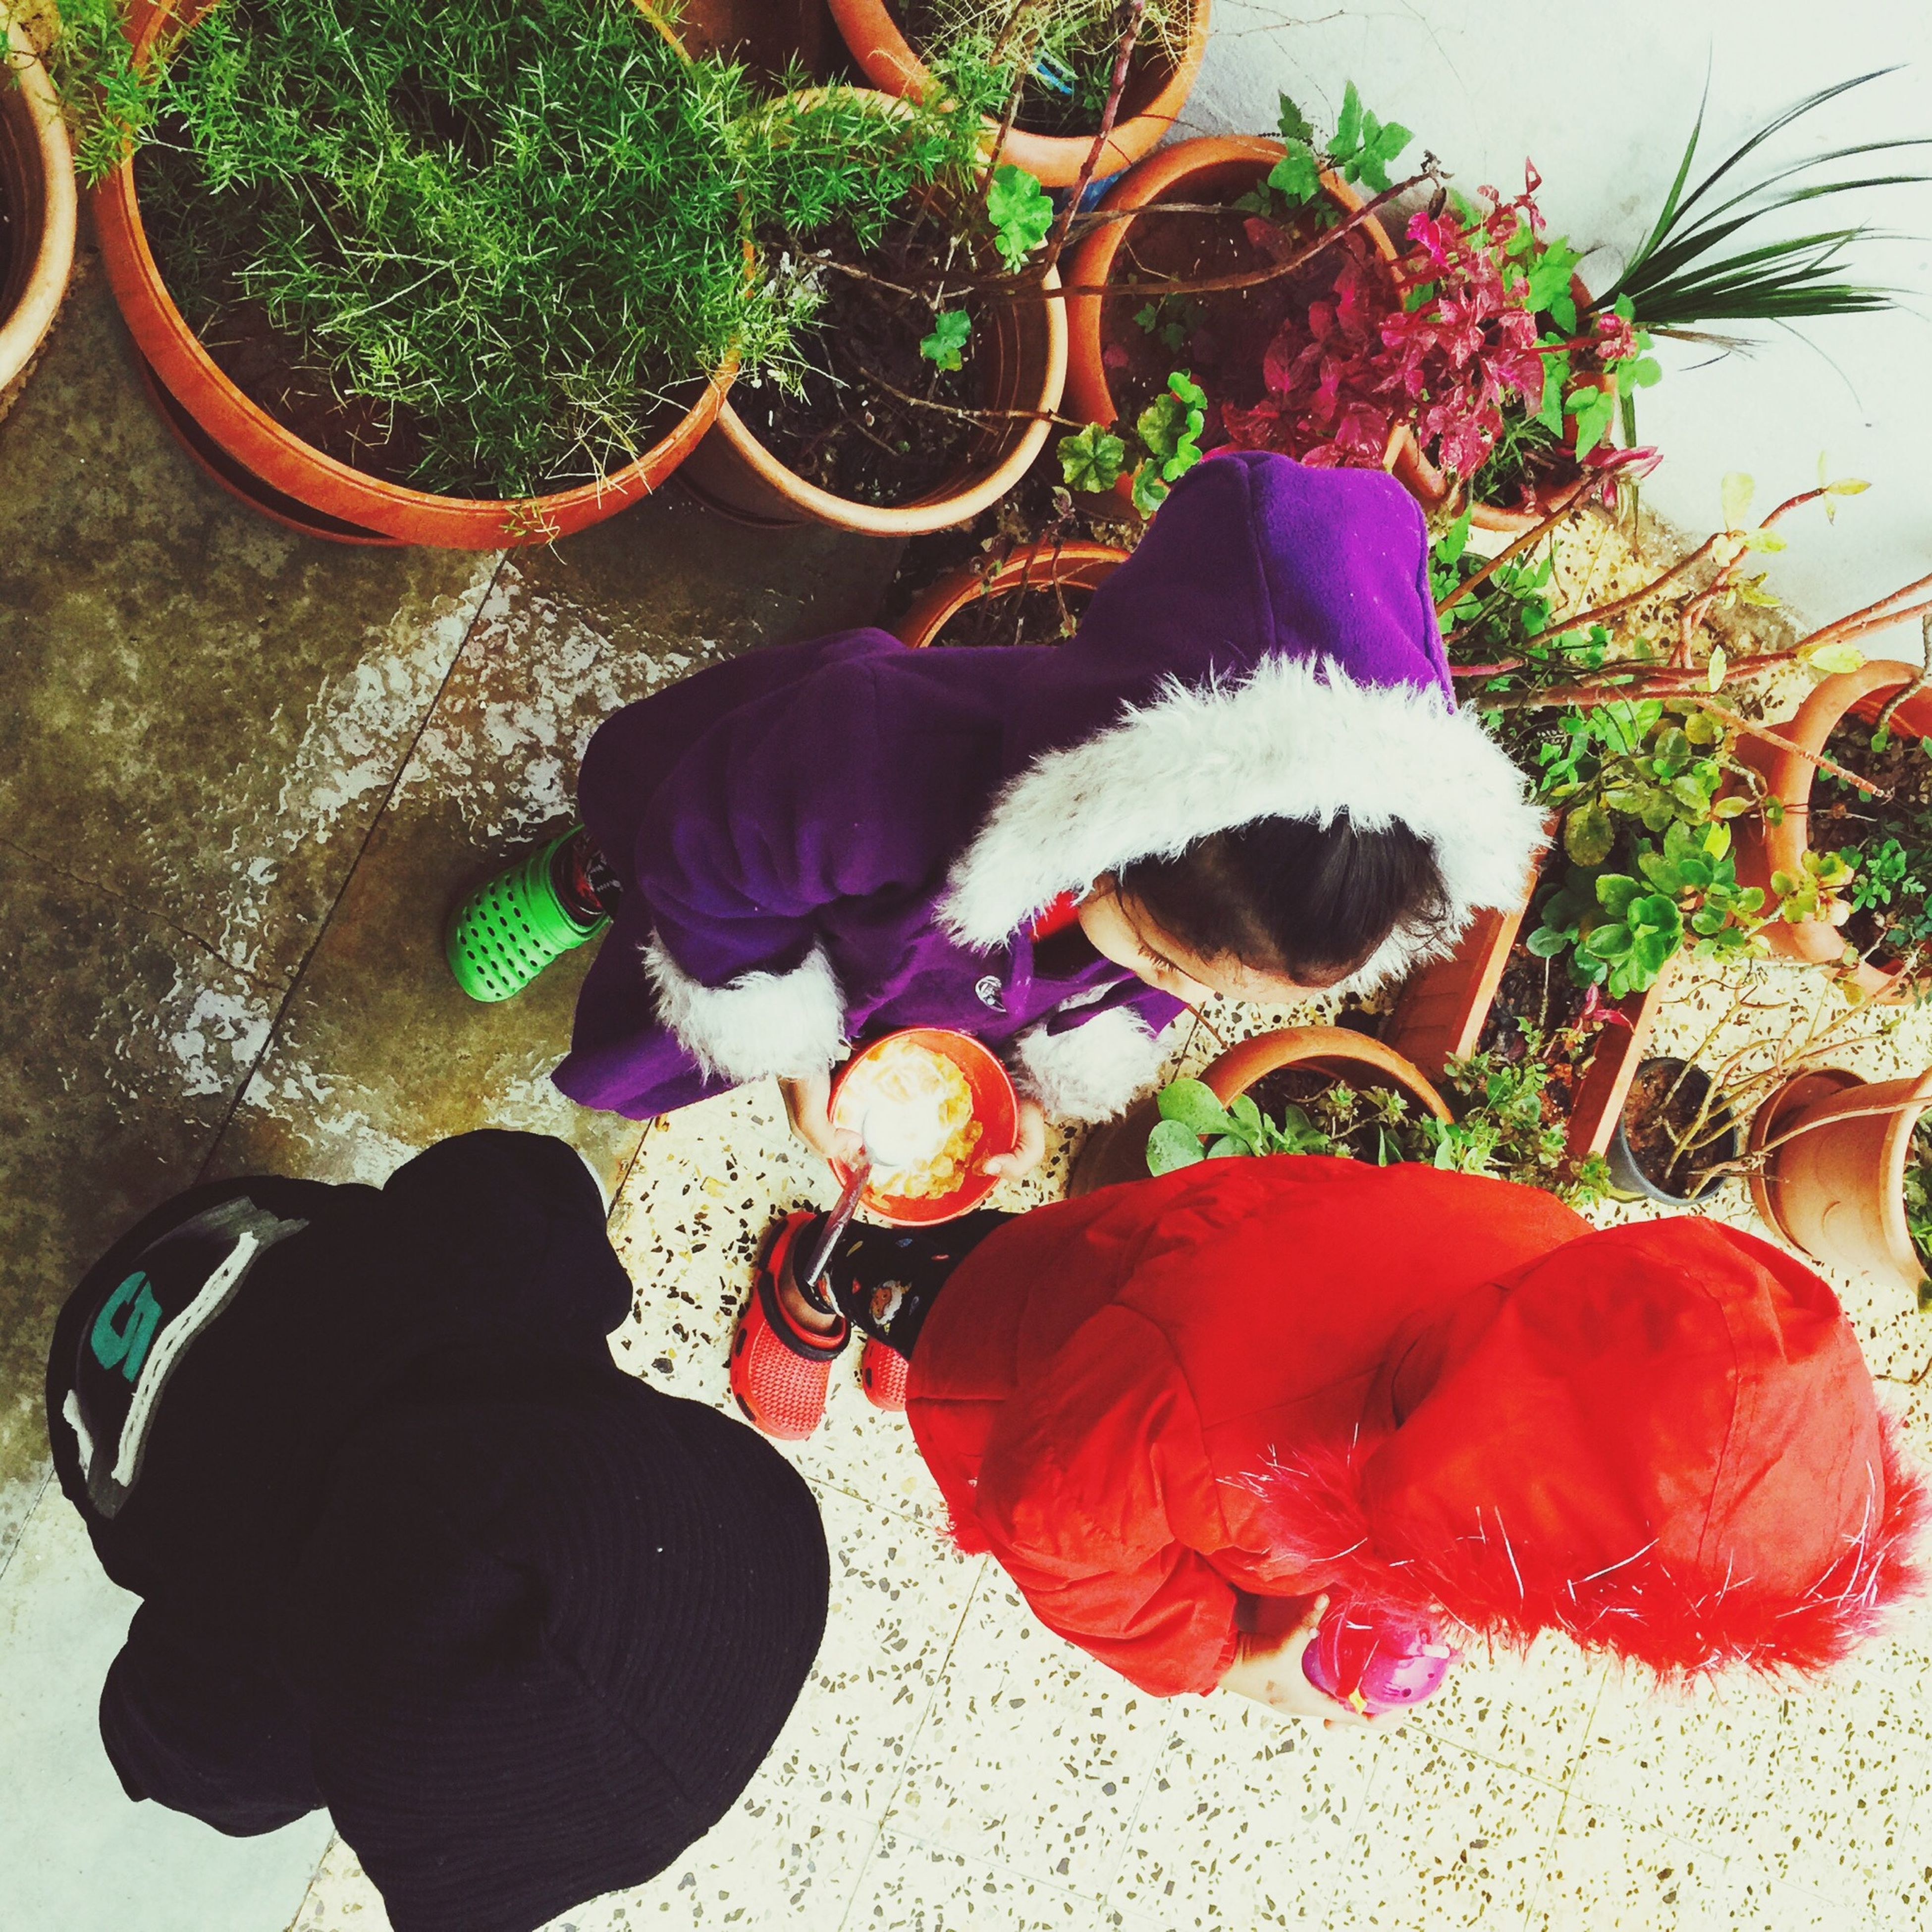 plant, flower, potted plant, leaf, day, growth, outdoors, men, lifestyles, high angle view, street, freshness, sunlight, red, leisure activity, person, multi colored, nature